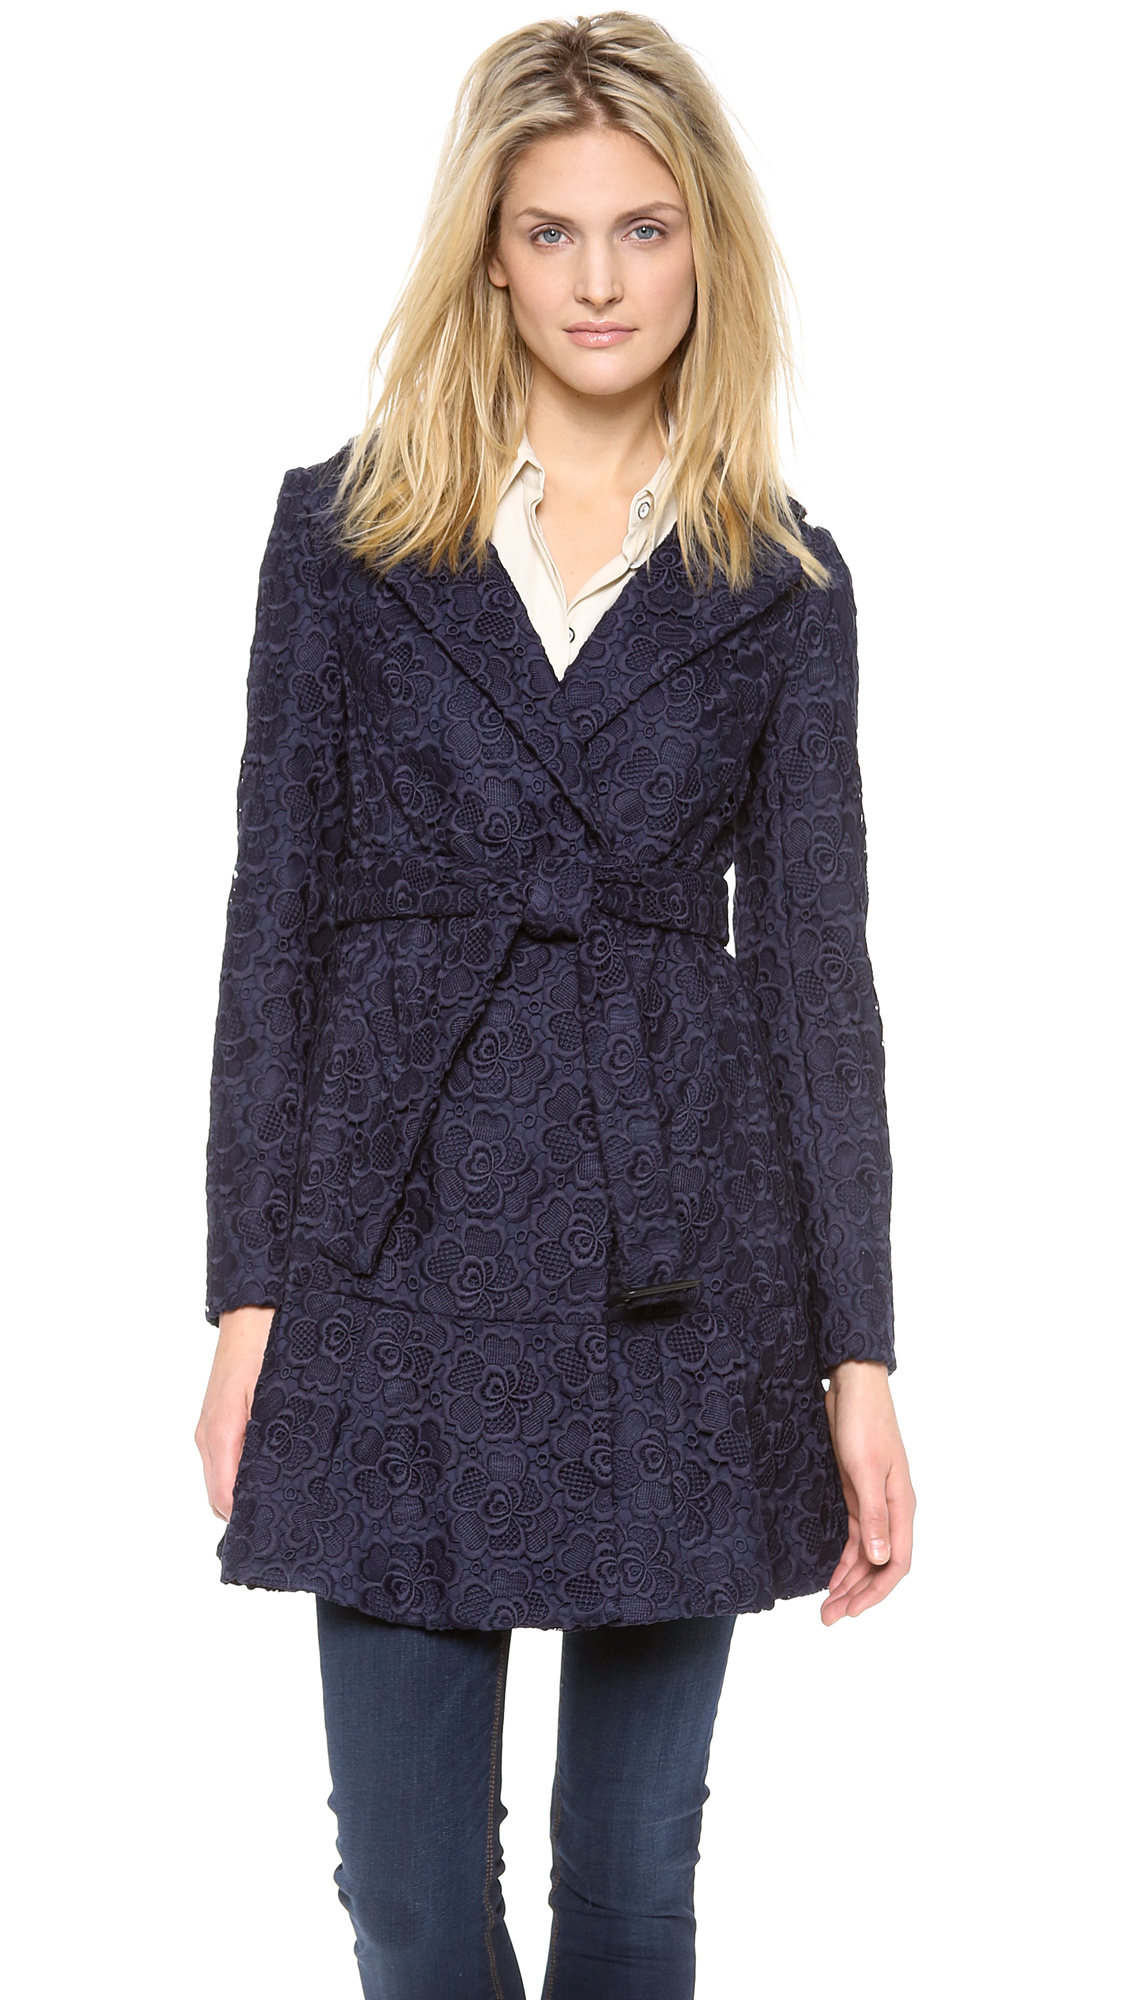 diane von furstenberg diane von furstenberg tasha lace trench coat sizes 10 shop it to me. Black Bedroom Furniture Sets. Home Design Ideas